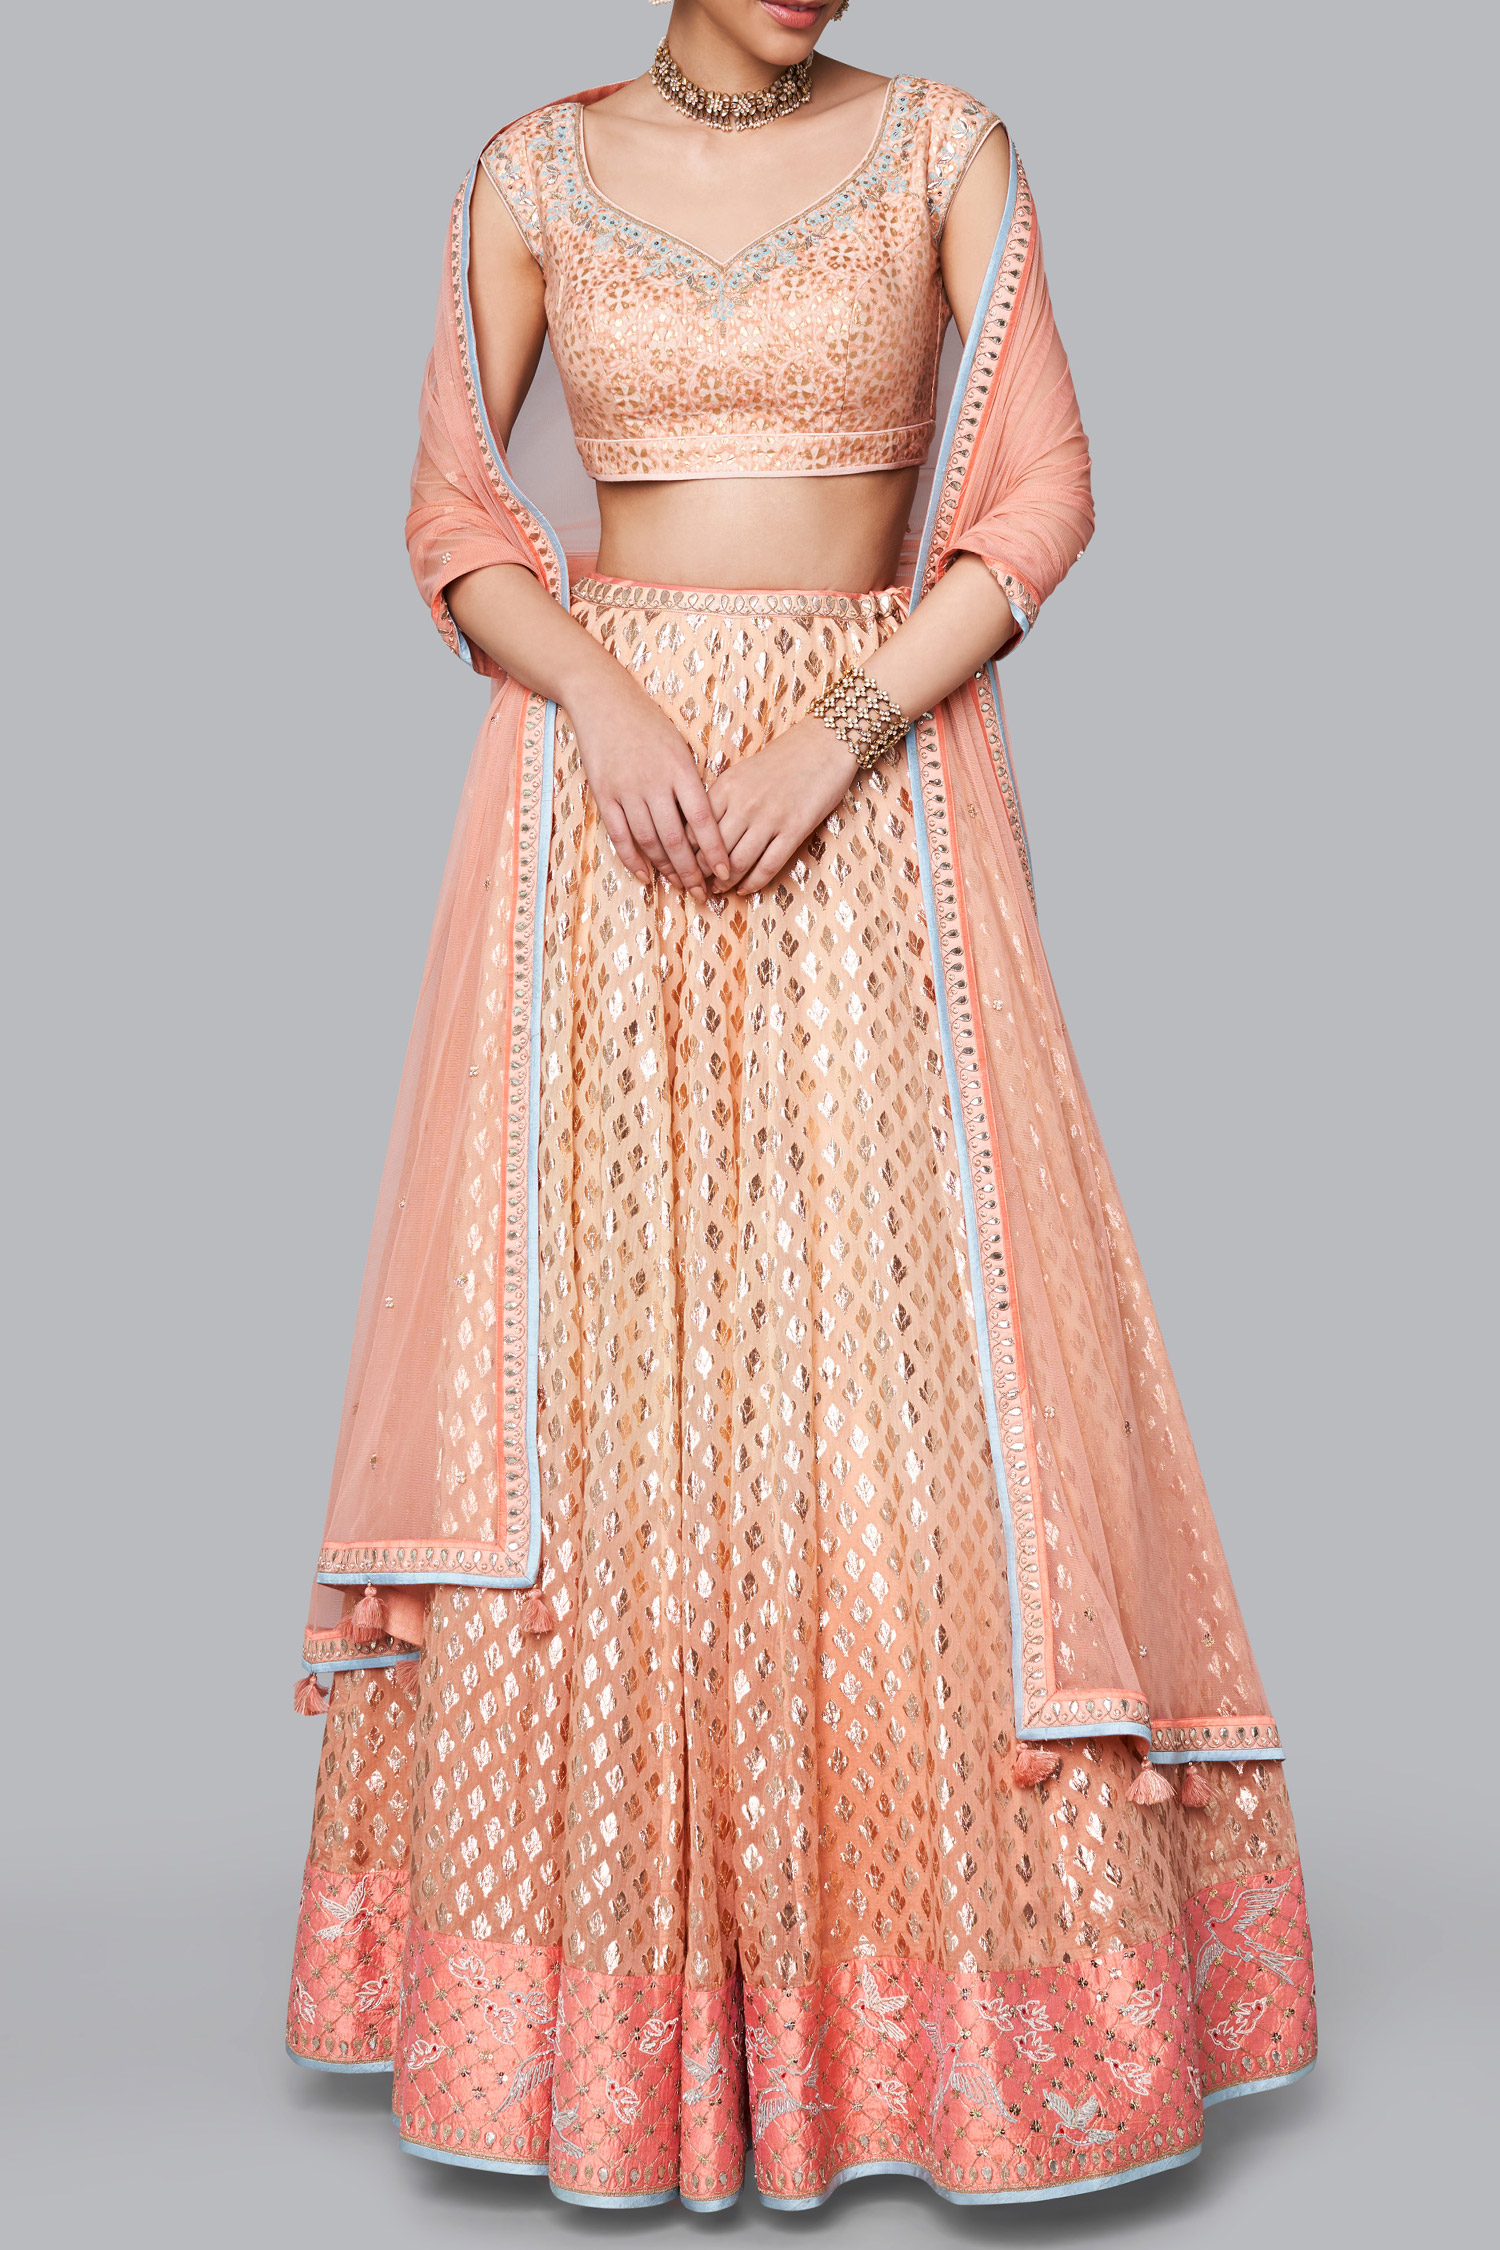 Image result for peach brocade gown